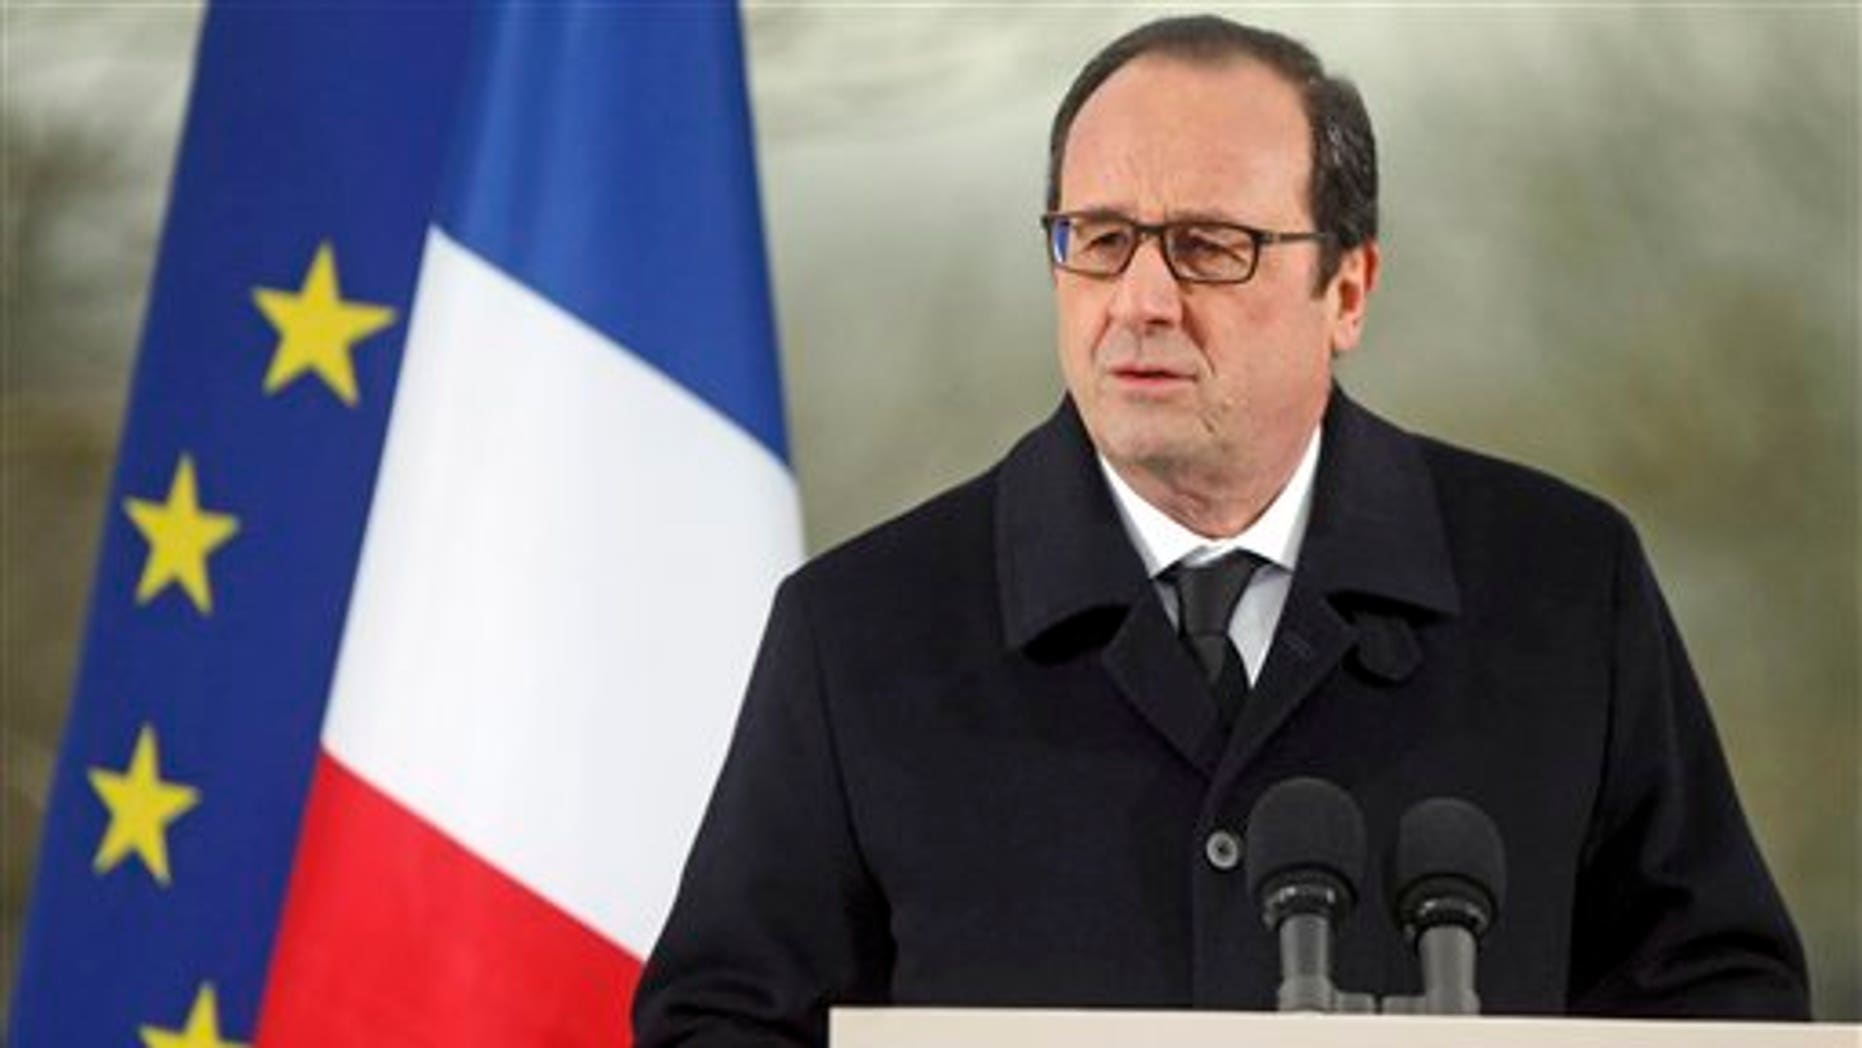 French President Francois Hollande delivers a speech during a ceremony at the Sarre-Union Jewish cemetery, eastern France, Tuesday, Feb. 17, 2015.  (AP Photo/Christian Lutz)